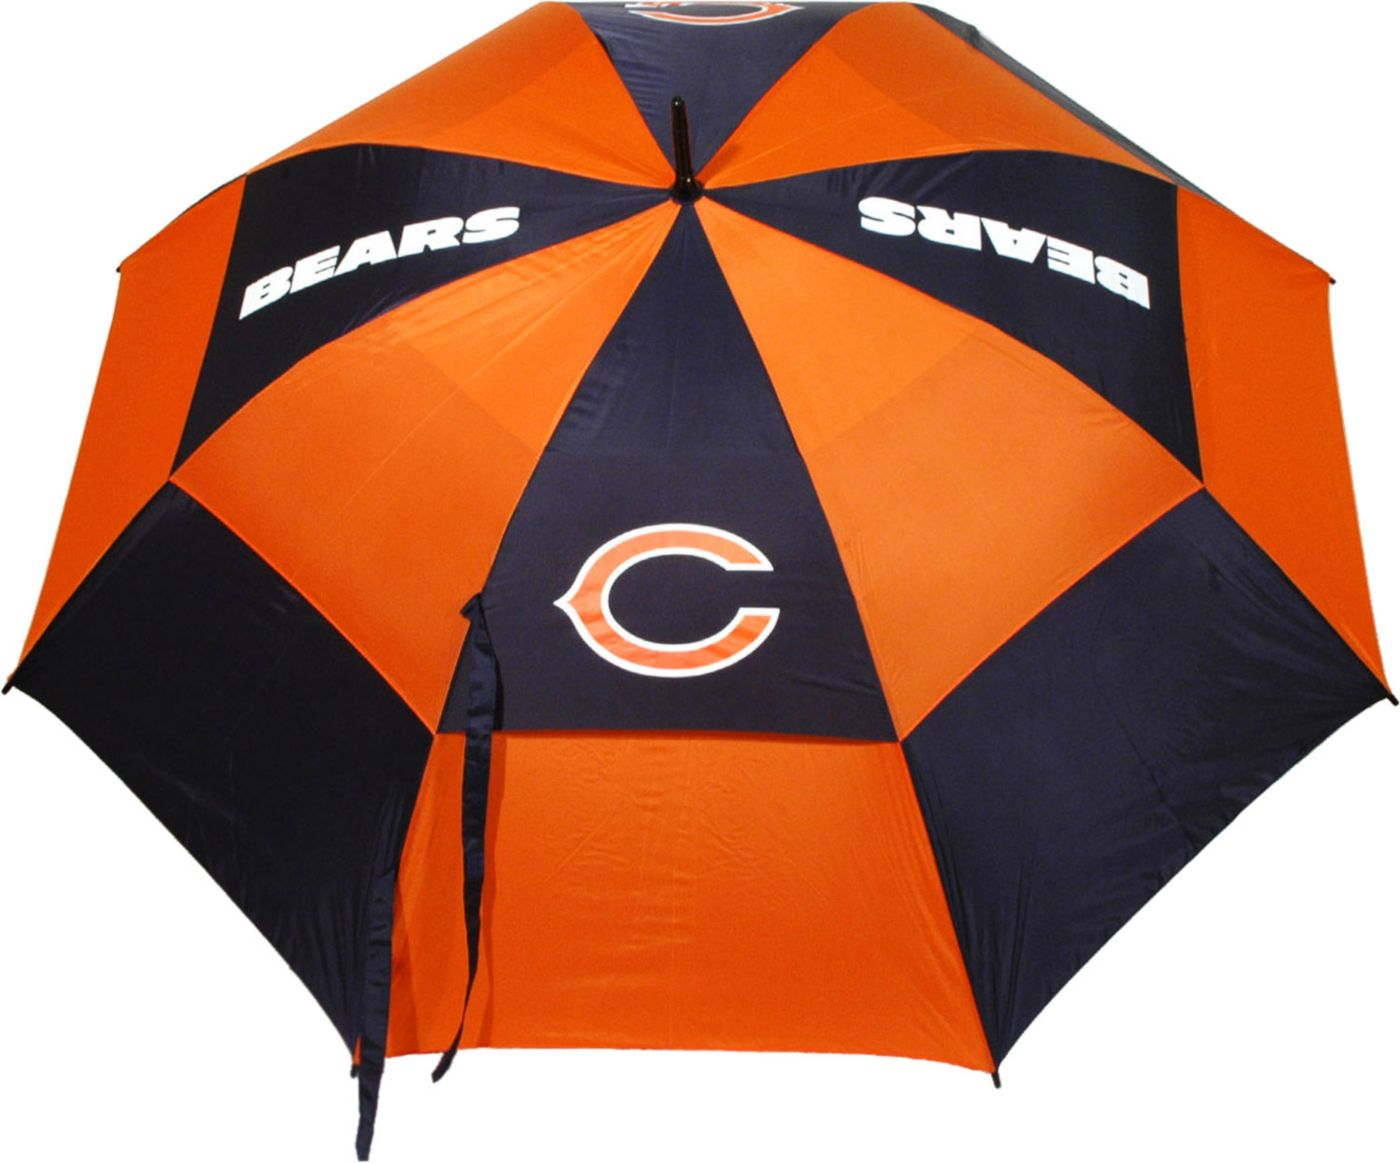 Team Golf Chicago Bears Umbrella